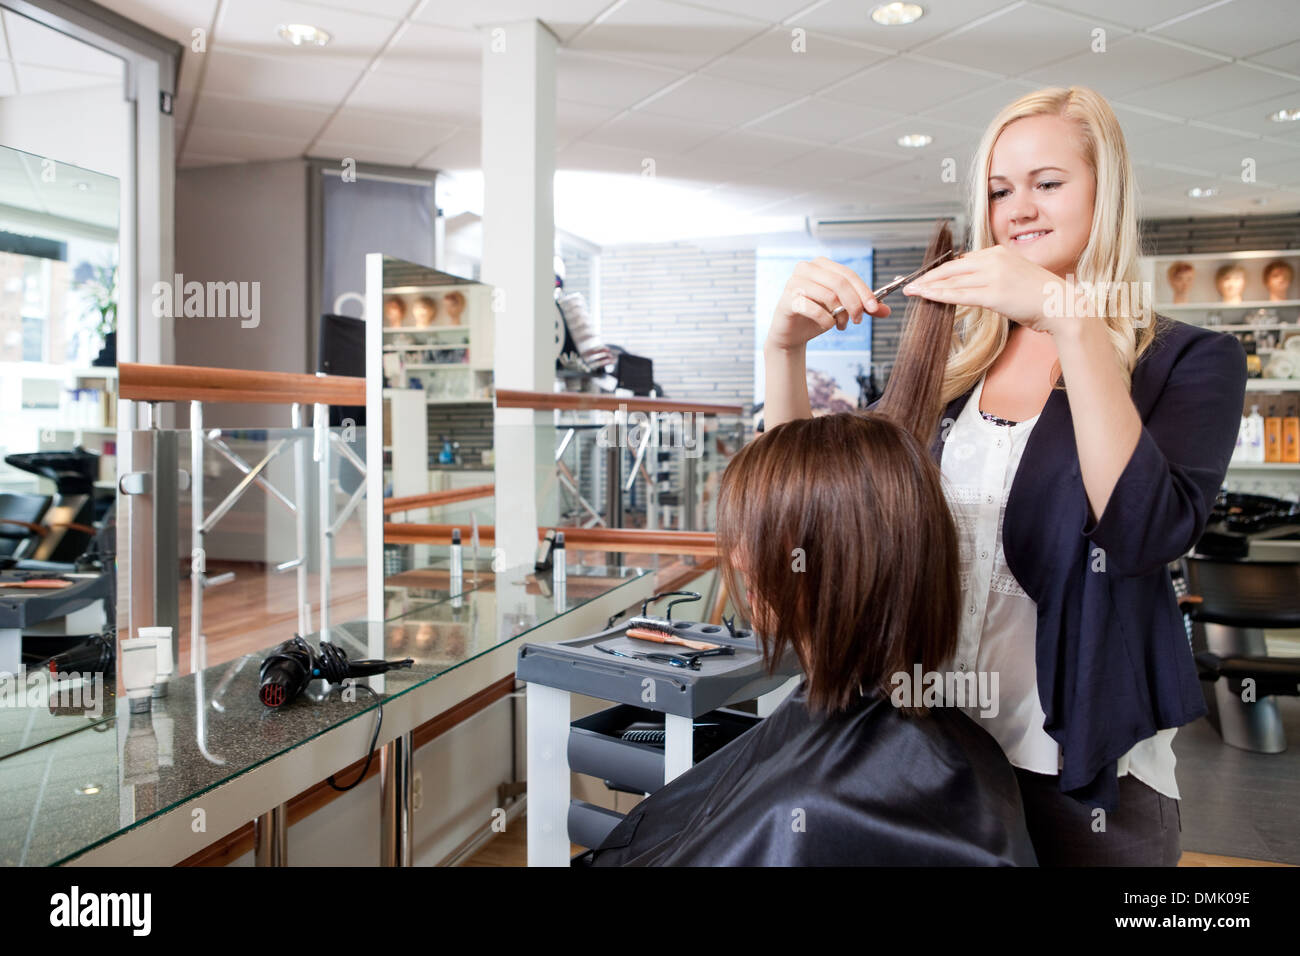 Hairdresser Cutting Client's Hair - Stock Image